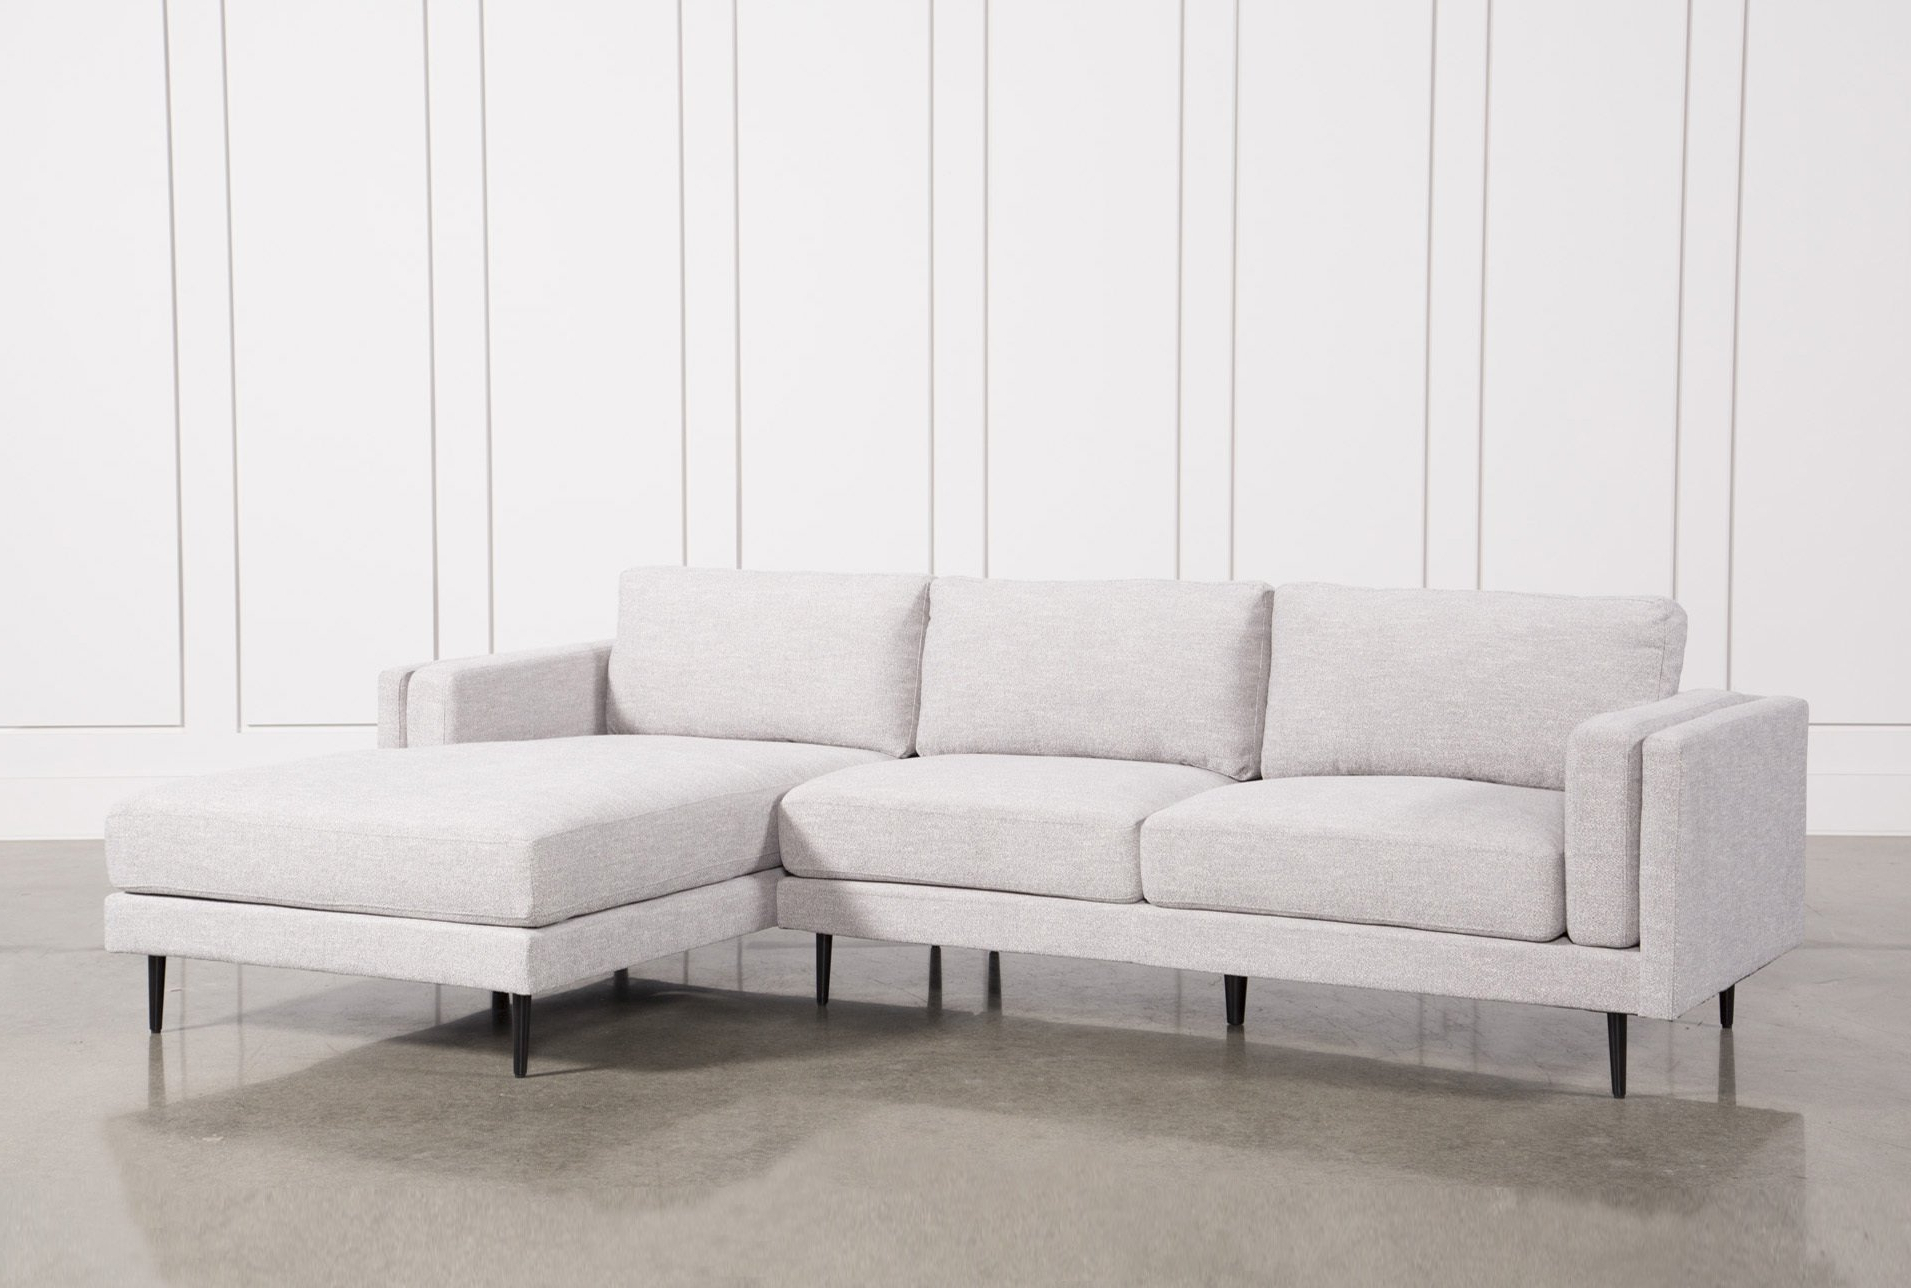 Flossy Pull Out Bed Chaise Aquarius Light Grey Piece Sectional Throughout Trendy Egan Ii Cement Sofa Sectionals With Reversible Chaise (View 13 of 20)